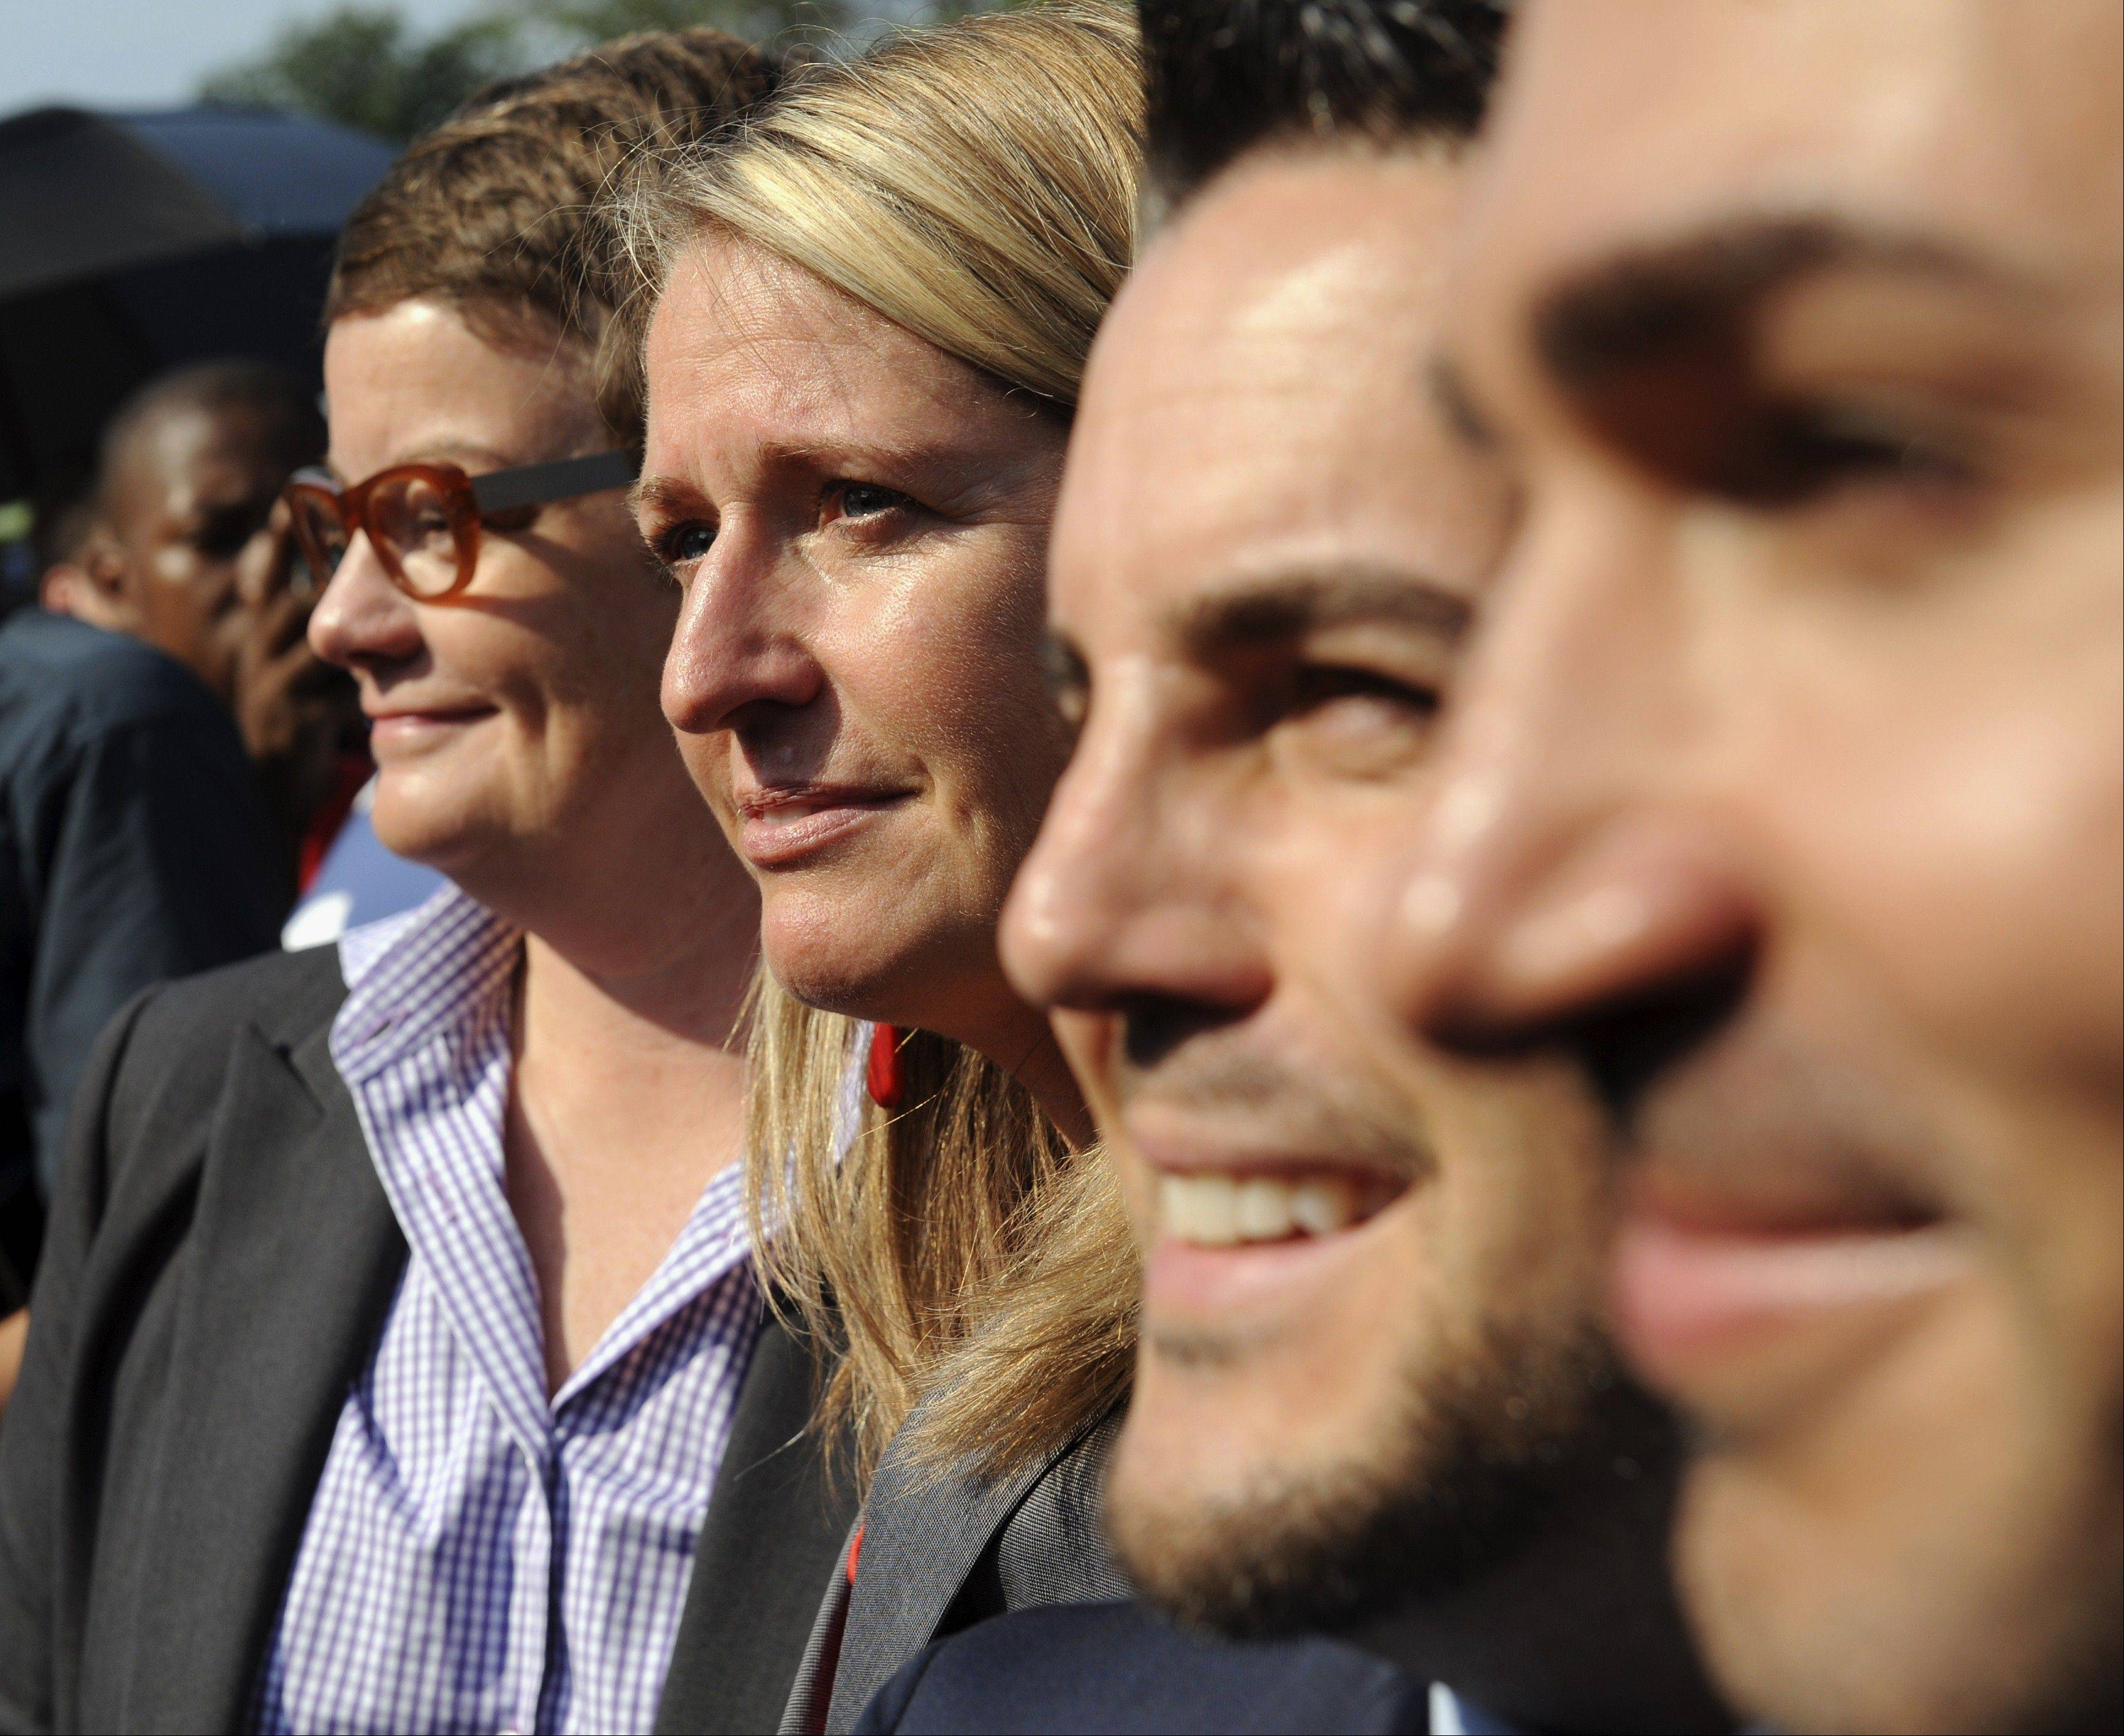 California's Proposition 8 plaintiffs, from left, Kris Perry, Sandy Steir, Jeff Zarrillo, and Paul Katami walk into the Supreme Court in Washington, Wednesday, June 26, 2013. The Supreme Court has cleared the way for same-sex marriage in California by holding that defenders of California's gay marriage ban did not have the right to appeal lower court rulings striking down the ban.